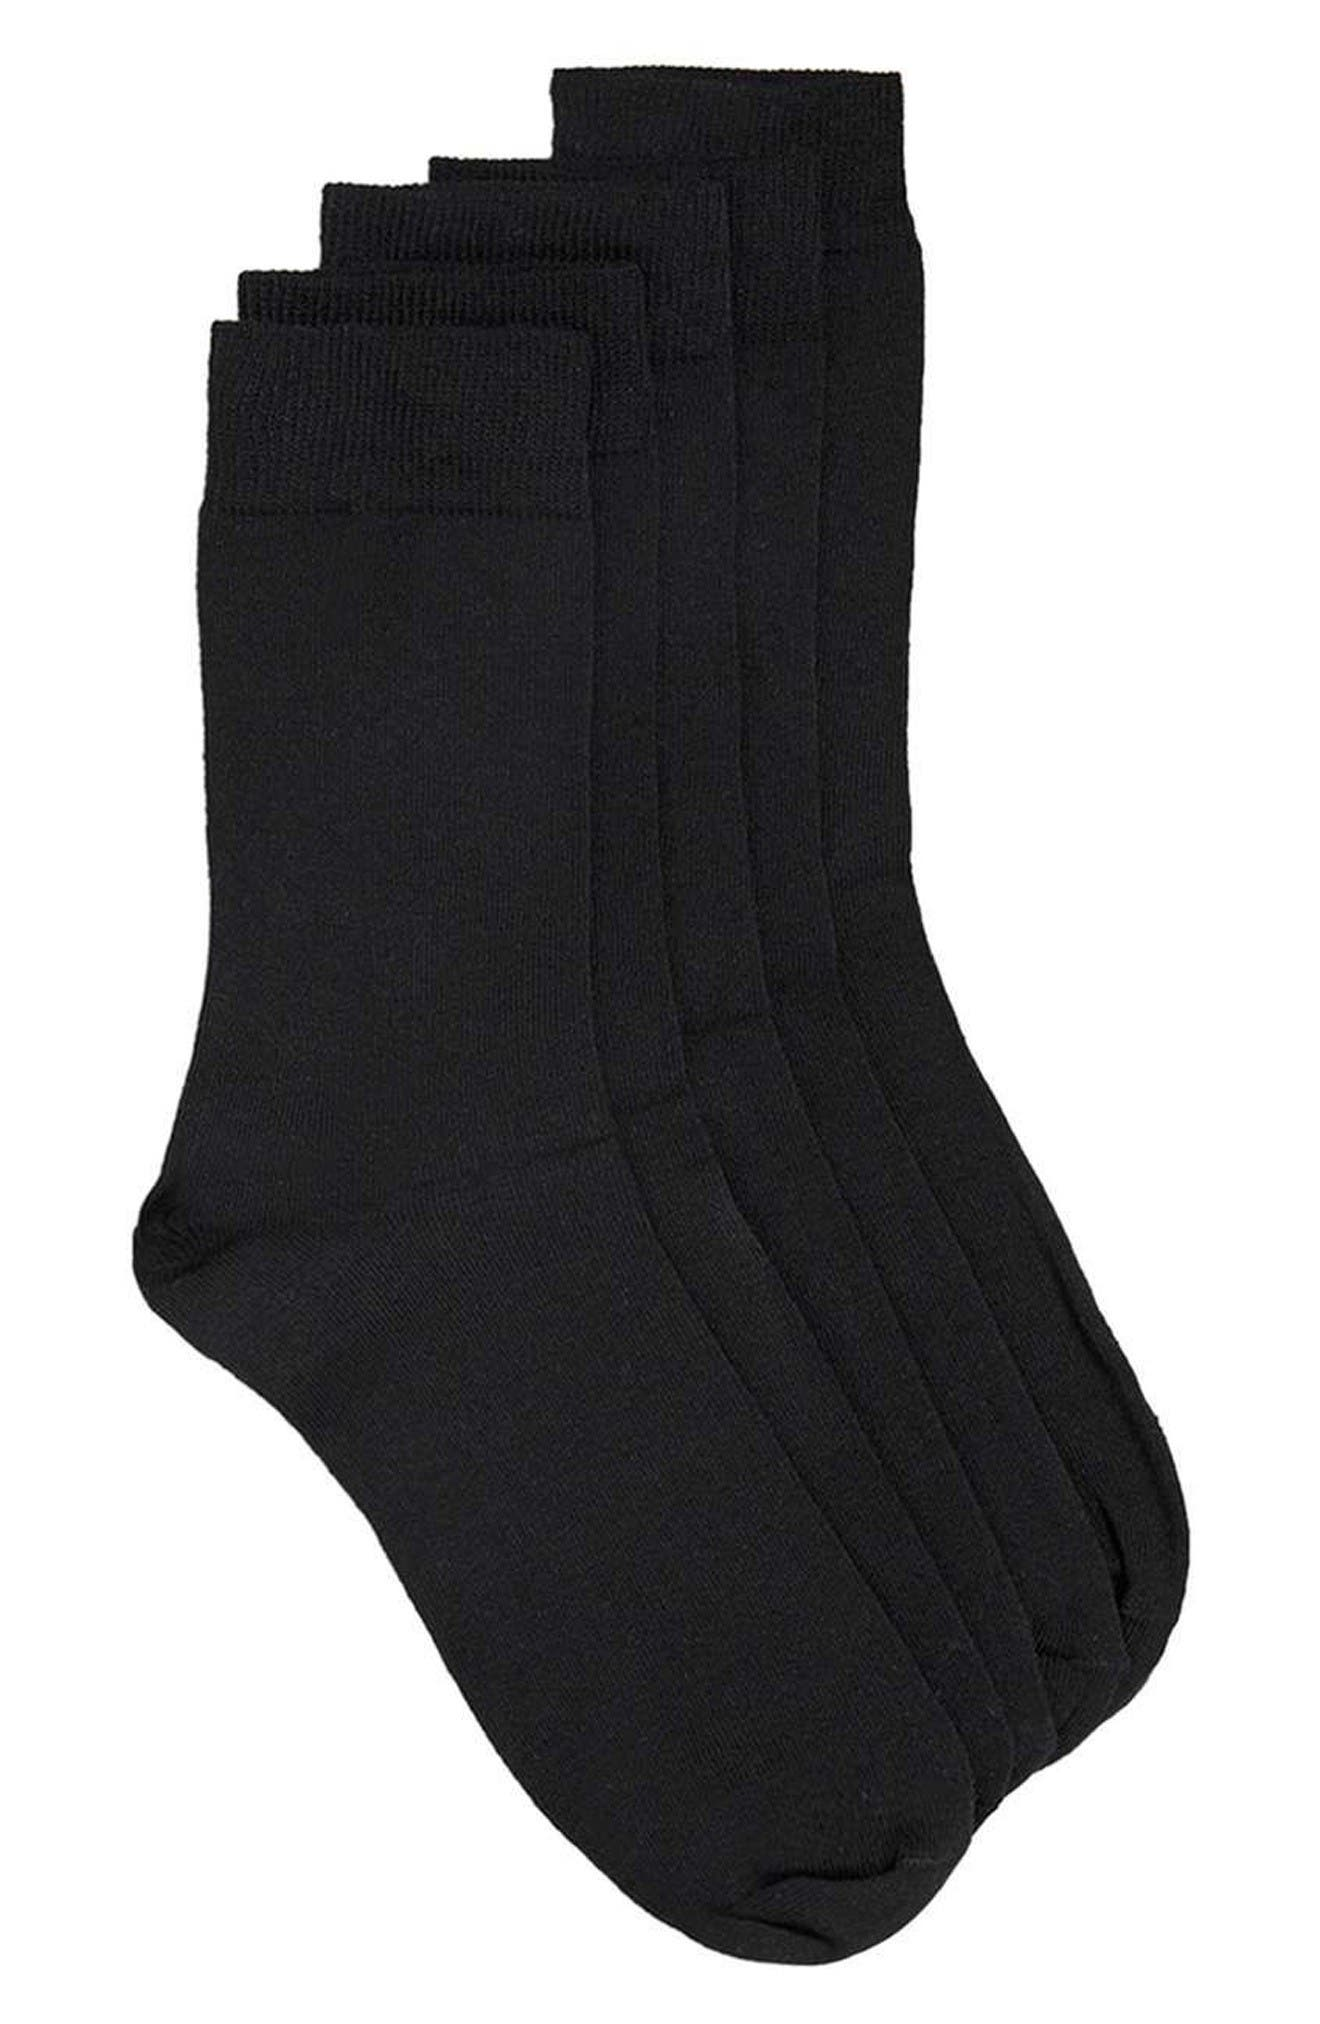 Topman 5-Pack Branded Socks